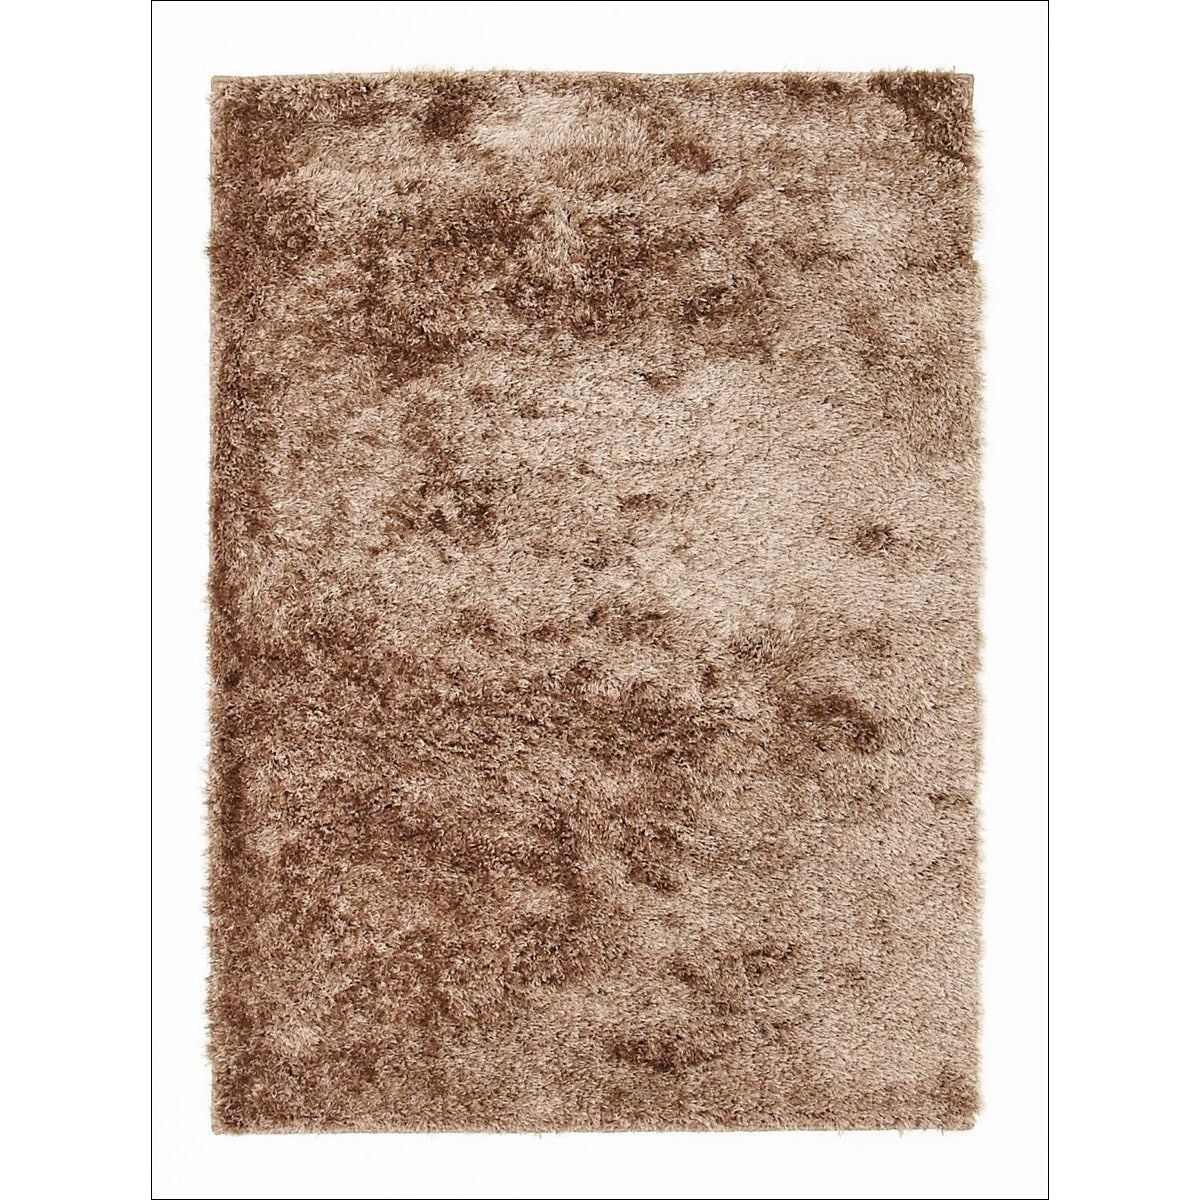 twilight shag rug  latte modern shaggy rug – rugs of beauty - twilight shag rug  latte modern shaggy rug  rugs of beauty